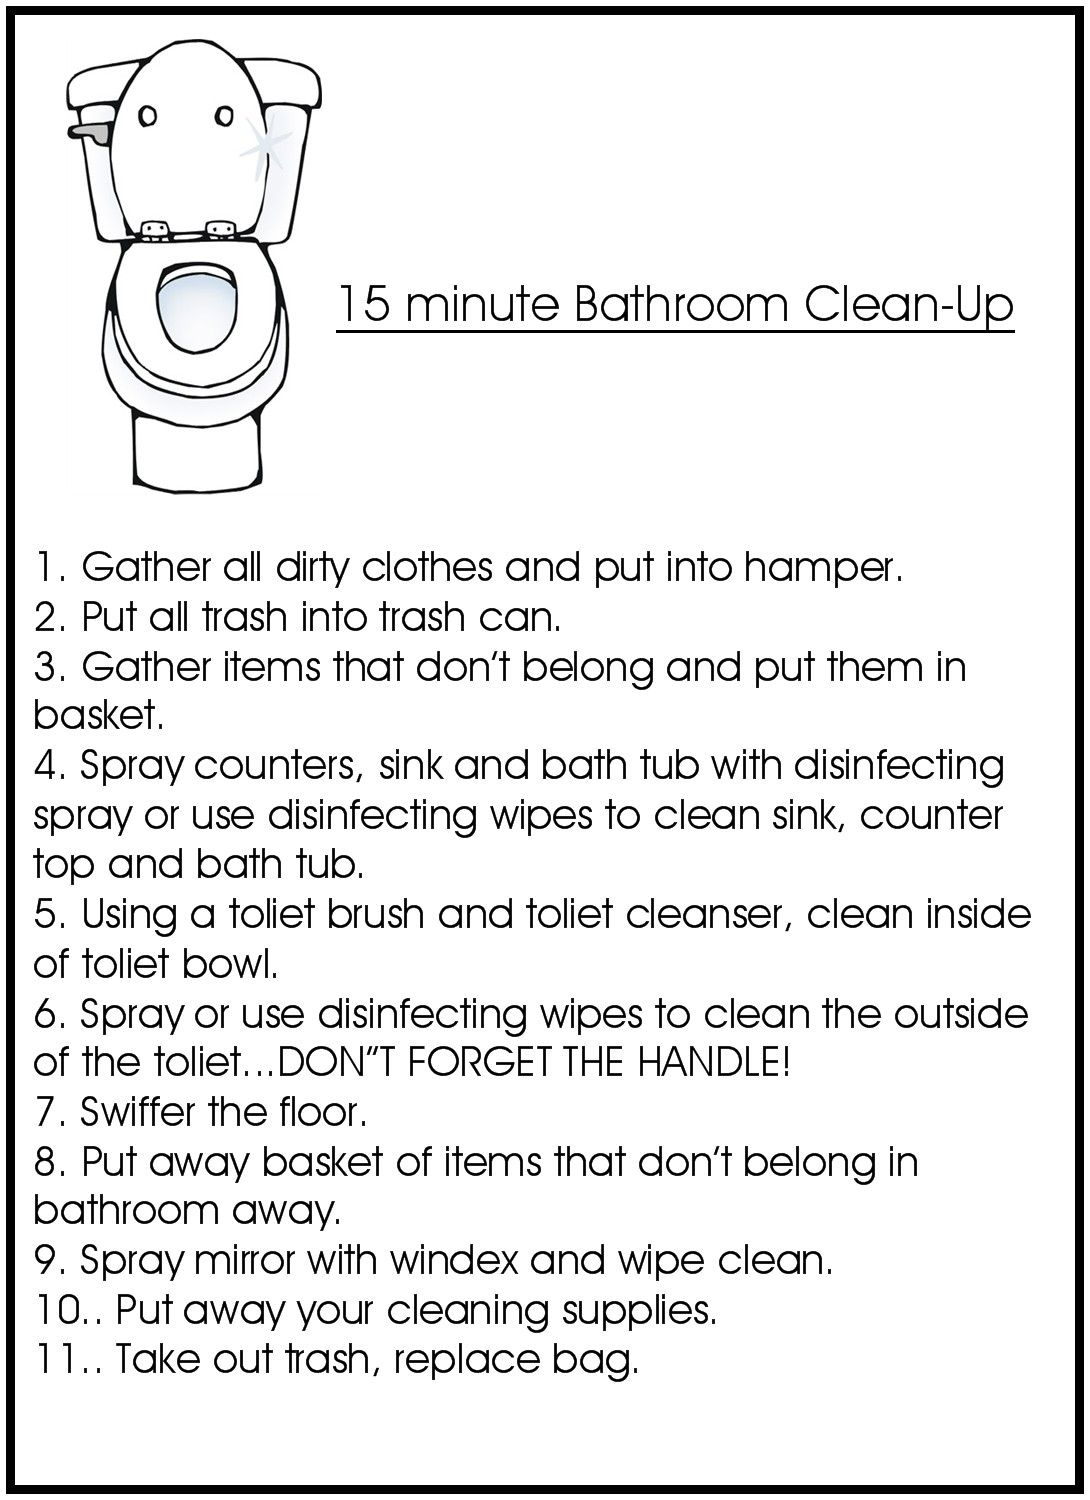 Lovely How To Clean A Bathroom Checklist | 15 Minute Bathroom Clean Up